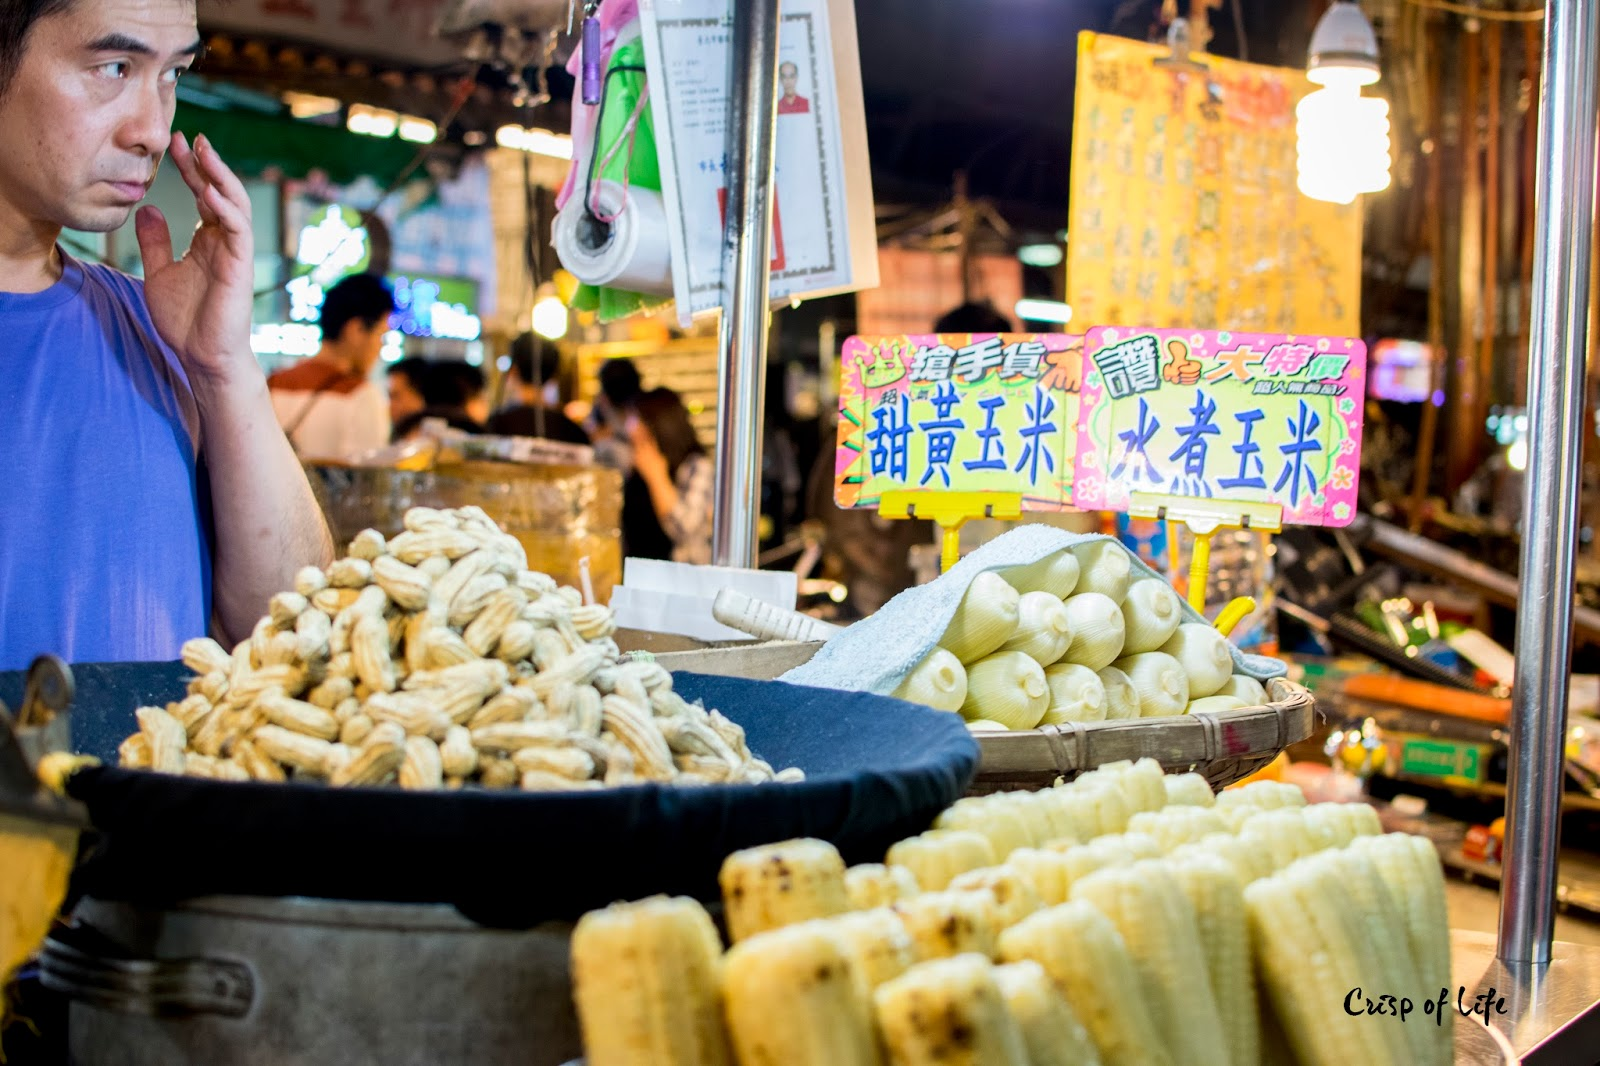 饶河夜市 Raohe night market